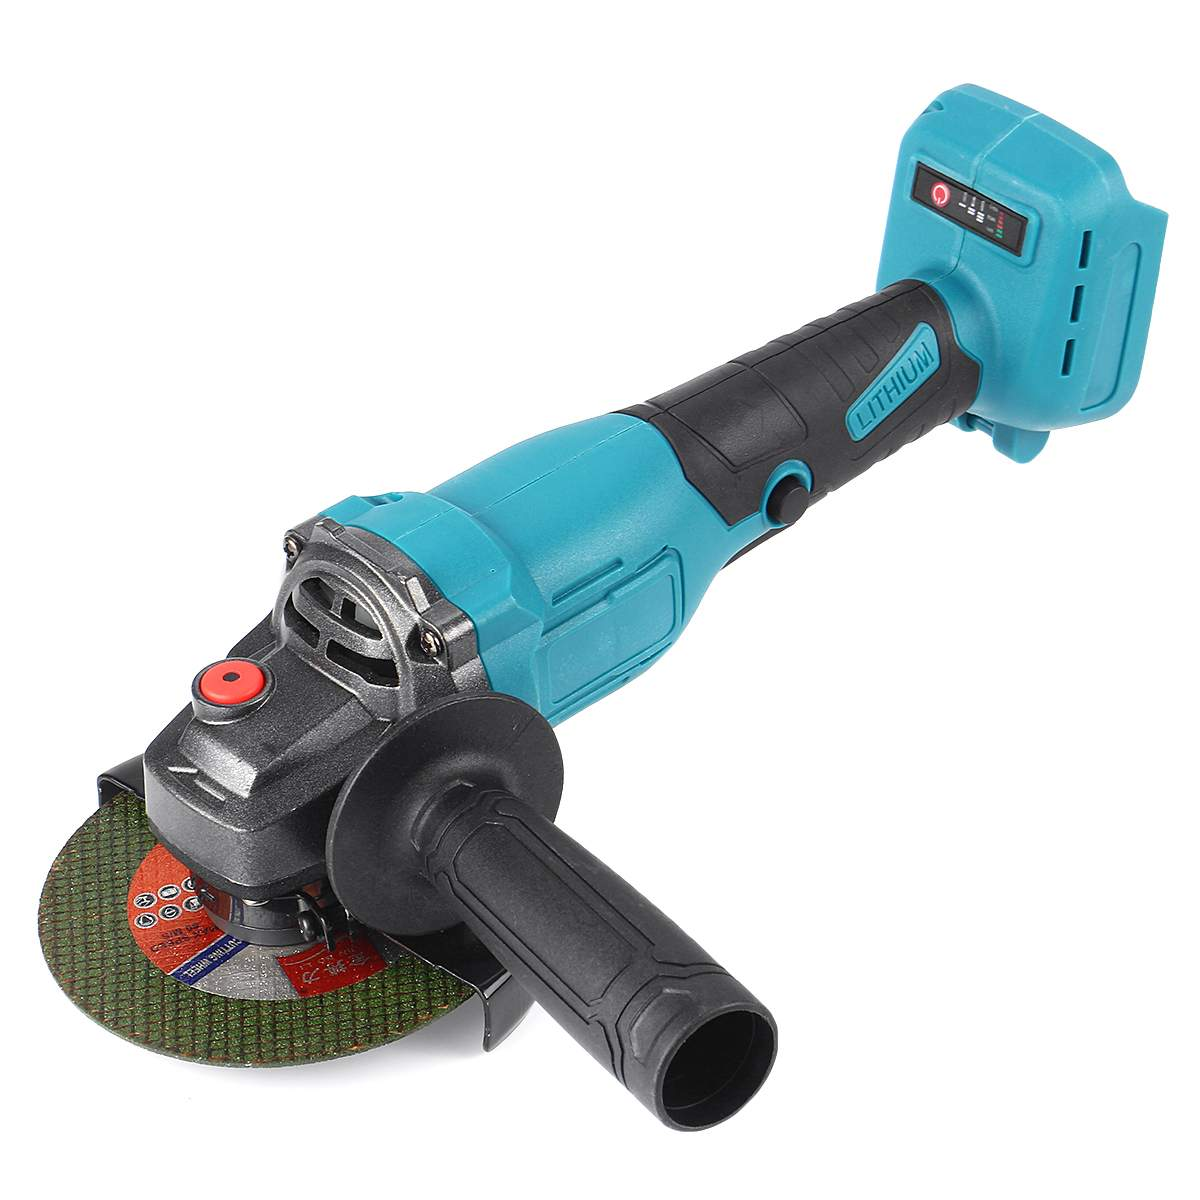 Grinder Makita Brushless With 800W Grinder 4pcs Angle 18V Grinding Disc For 125mm 20000rpm Angle Angle Machine Battery Electric